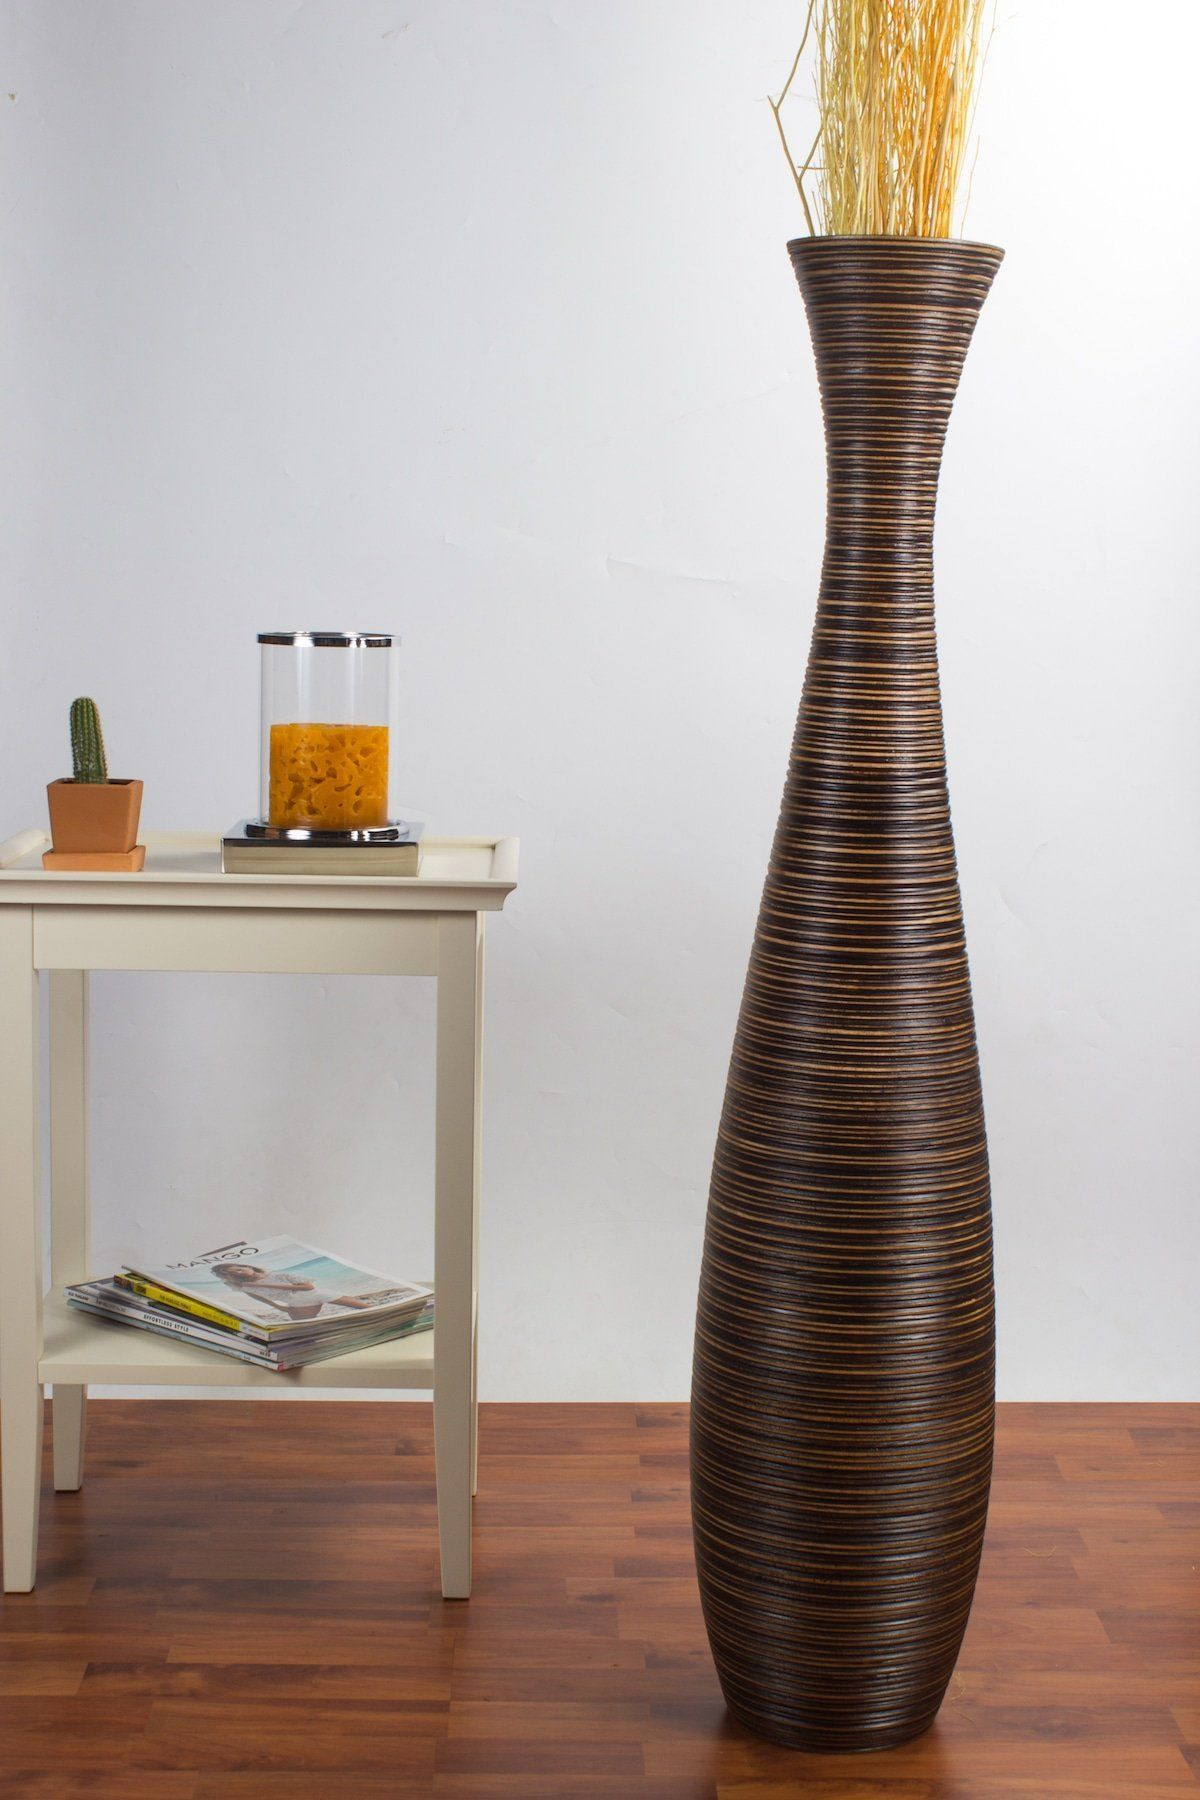 wooden vases and bowls of tall vase with sticks new tall floor vase 44 inches wood brown regarding tall vase with sticks new tall floor vase 44 inches wood brown unique and distinguished